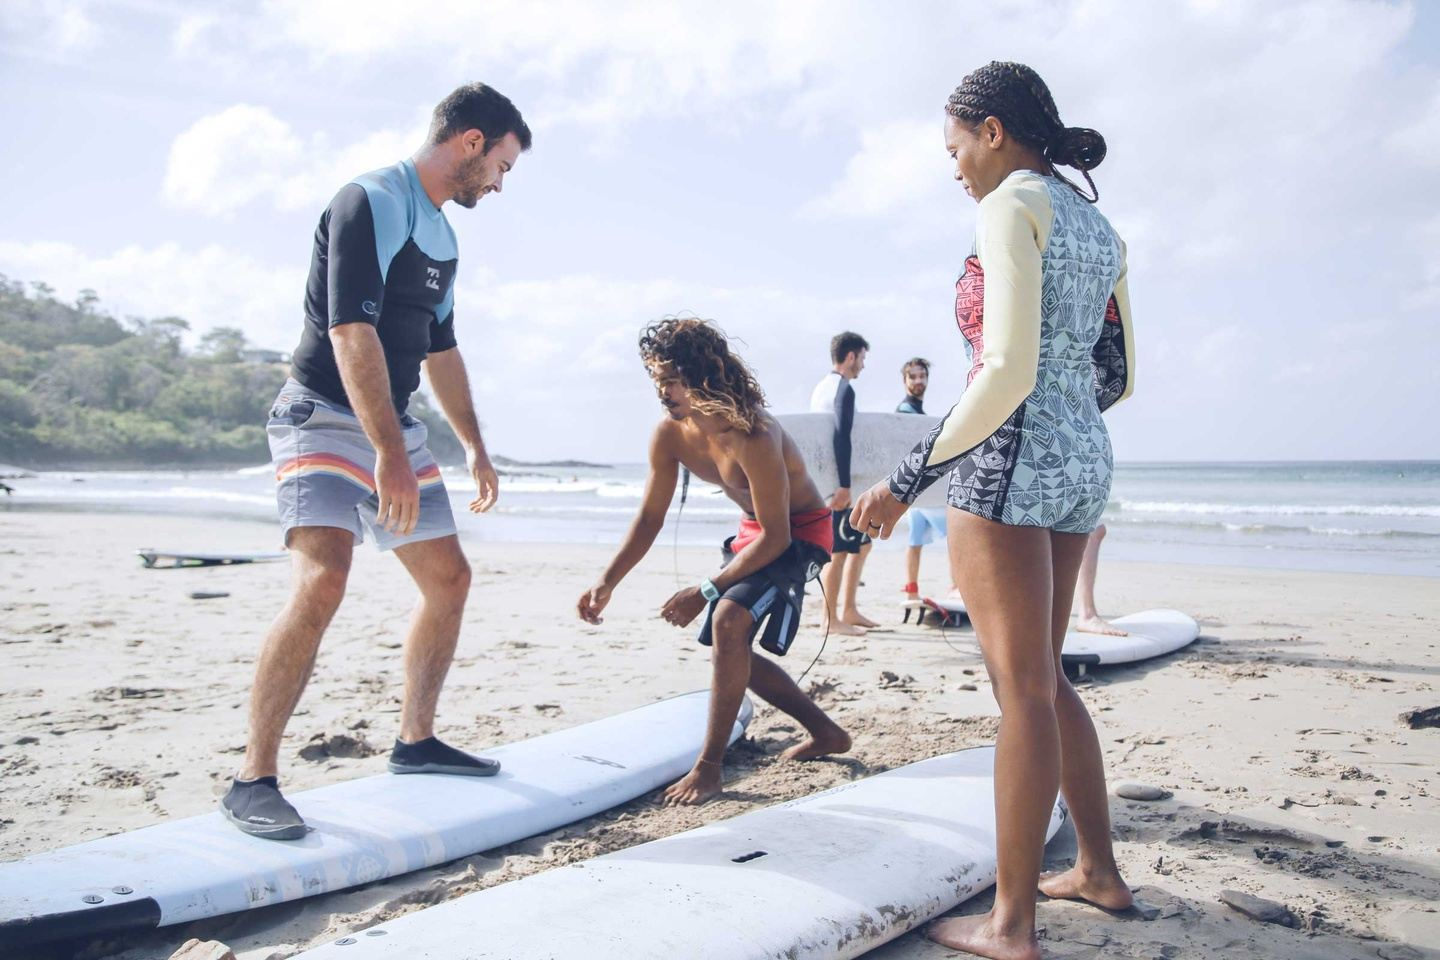 Nicaragua 7-Day Surf Trip - Barefoot Surf Travel (8th to 15th May)